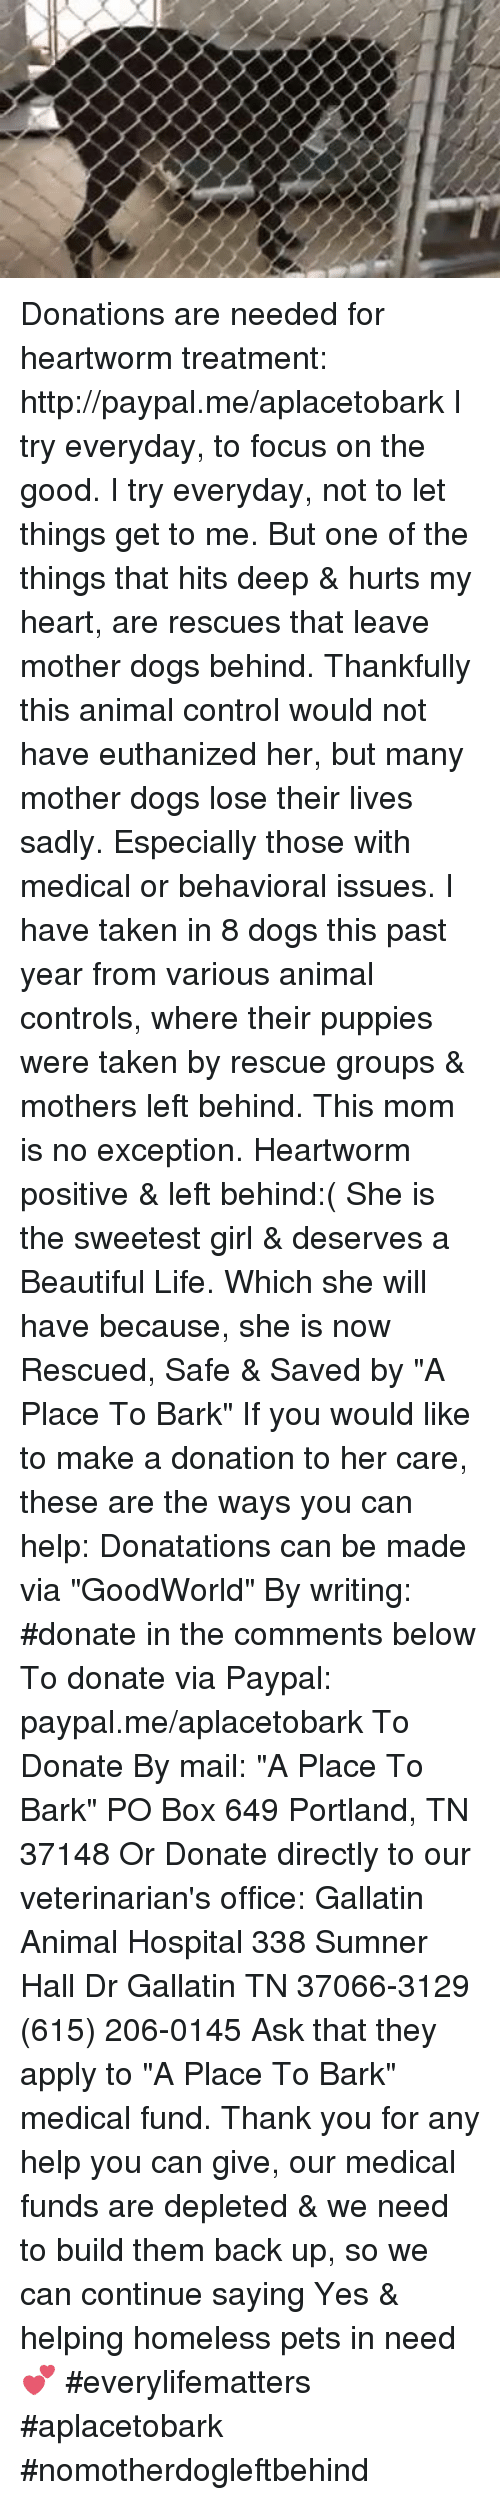 """Animals, Beautiful, and Boxing: Donations are needed for heartworm treatment: http://paypal.me/aplacetobark  I try everyday, to focus on the good. I try everyday, not to let things get to me. But one of the things that hits deep & hurts my heart, are rescues that leave mother dogs behind.  Thankfully this animal control would not have euthanized her, but many mother dogs lose their lives sadly.  Especially those with medical or behavioral issues. I have taken in 8 dogs this past year from various animal controls, where their puppies were taken by rescue groups & mothers left behind.  This mom is no exception.  Heartworm positive & left behind:( She is the sweetest girl & deserves a Beautiful Life.   Which she will have because, she is now Rescued, Safe & Saved by """"A Place To Bark"""" If you would like to make a donation to her care, these are the ways you can help: Donatations can be made via """"GoodWorld""""   By writing: #donate in the comments below To donate via Paypal: paypal.me/aplacetobark To Donate By mail:  """"A Place To Bark"""" PO Box 649 Portland, TN 37148 Or Donate directly to our veterinarian's office: Gallatin Animal Hospital 338 Sumner Hall Dr Gallatin TN 37066-3129 (615) 206-0145 Ask that they apply to  """"A Place To Bark"""" medical fund. Thank you for any help you can give, our medical funds are depleted & we need to build them back up, so we can continue saying Yes & helping homeless pets in need💕  #everylifematters #aplacetobark #nomotherdogleftbehind"""